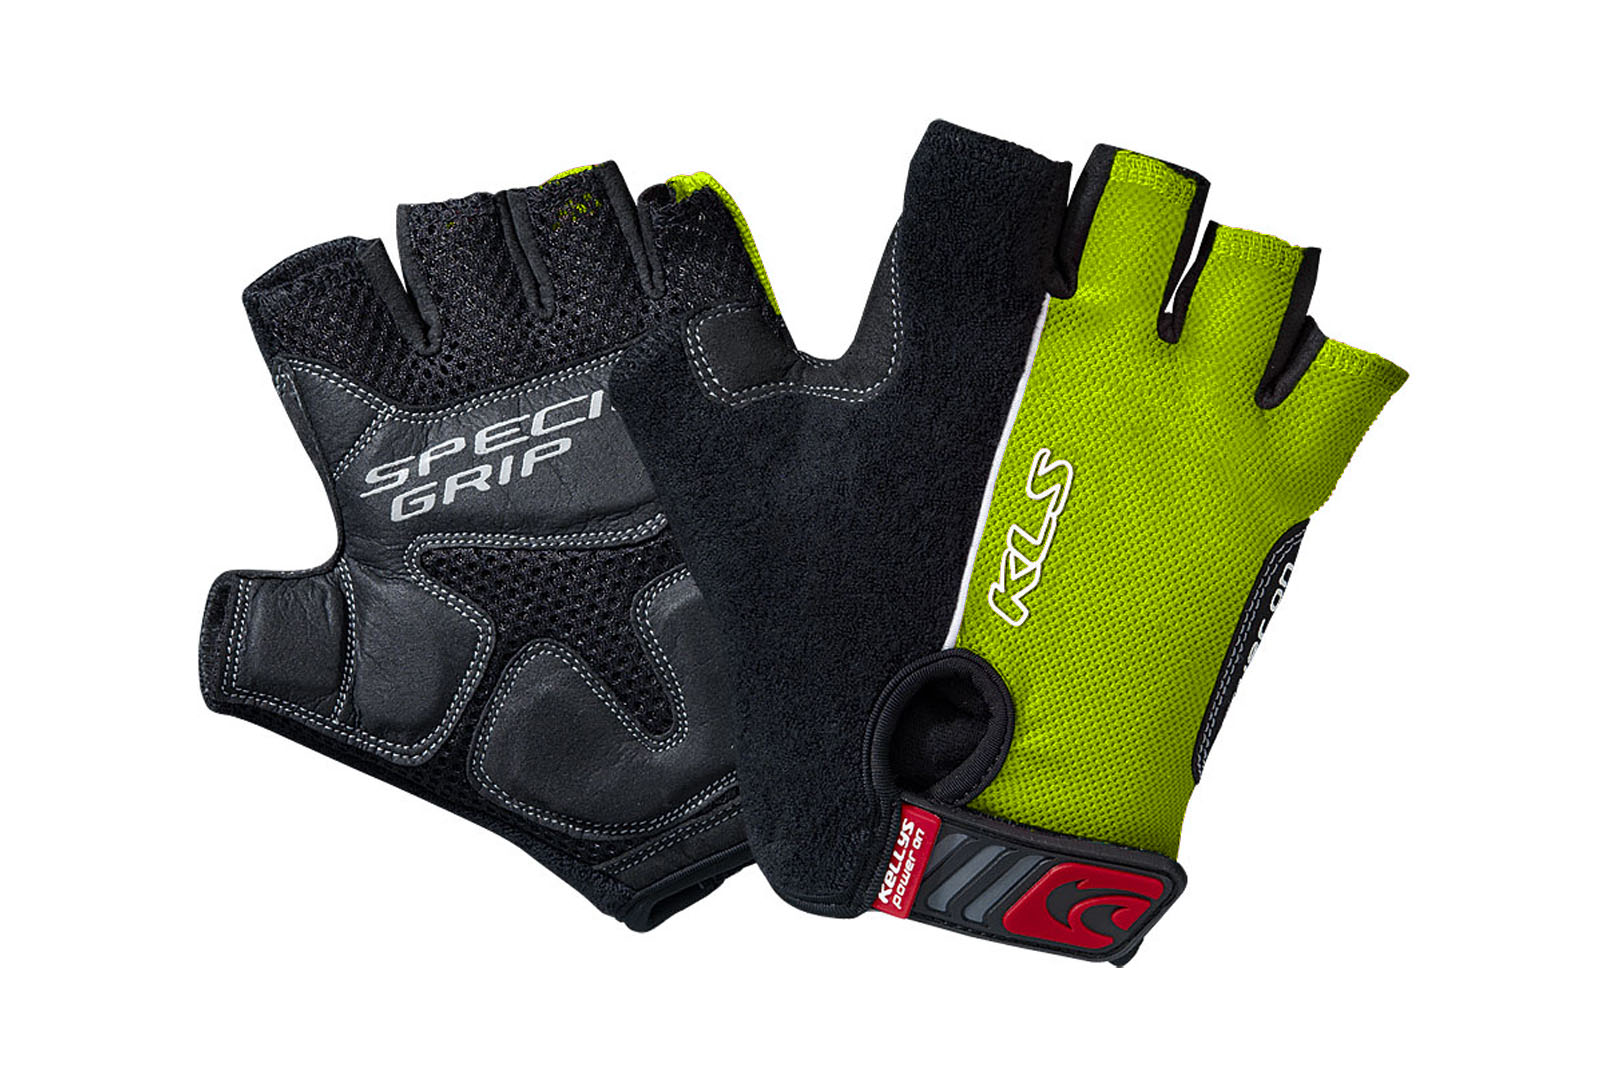 Handschuhe COMFORT lime green XL - Mile-Multisport